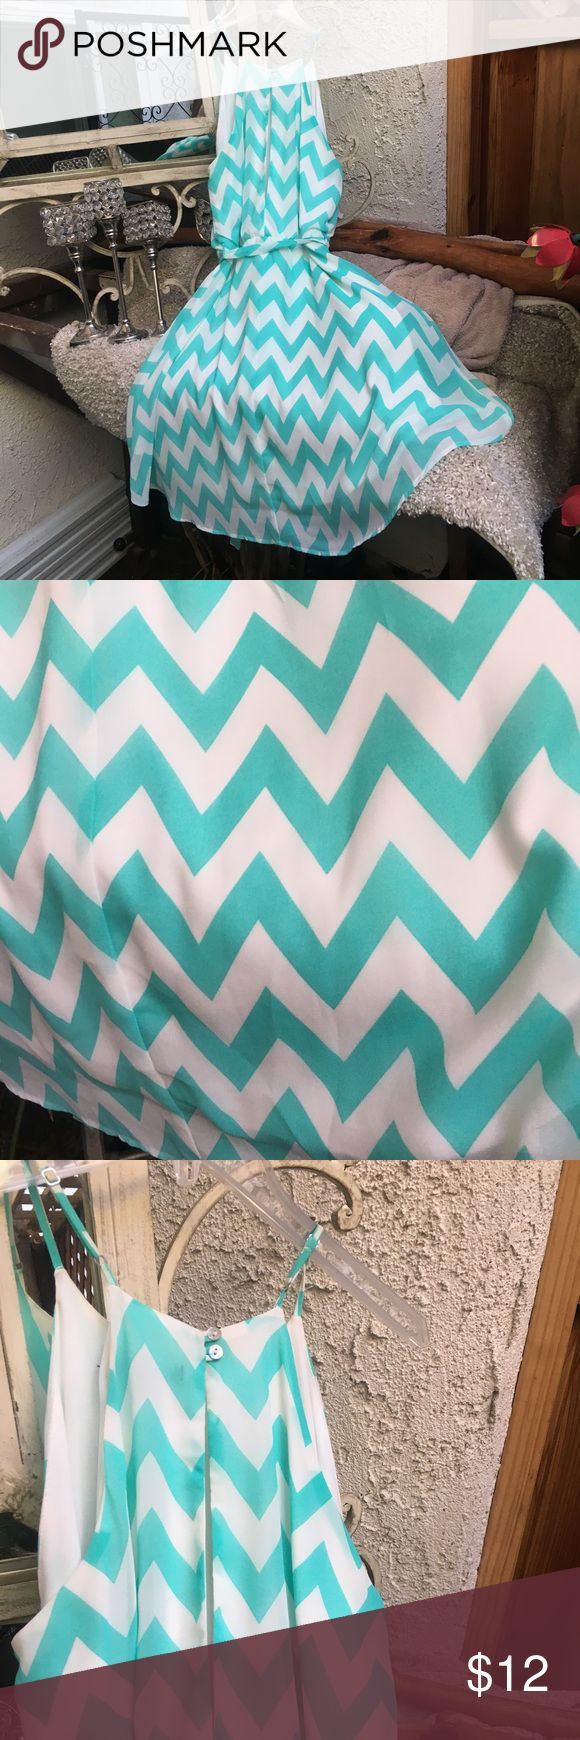 Teal & White Chevron Print Dress Very pretty teal and white chevron print chiffon dress with elastic waist, ribbon tie and full skirt. Fully lined, I went without bra no problem. The cut and style of dress is very flattering - only dress I wore at my waist and liked 👌 stuccatto Dresses Midi